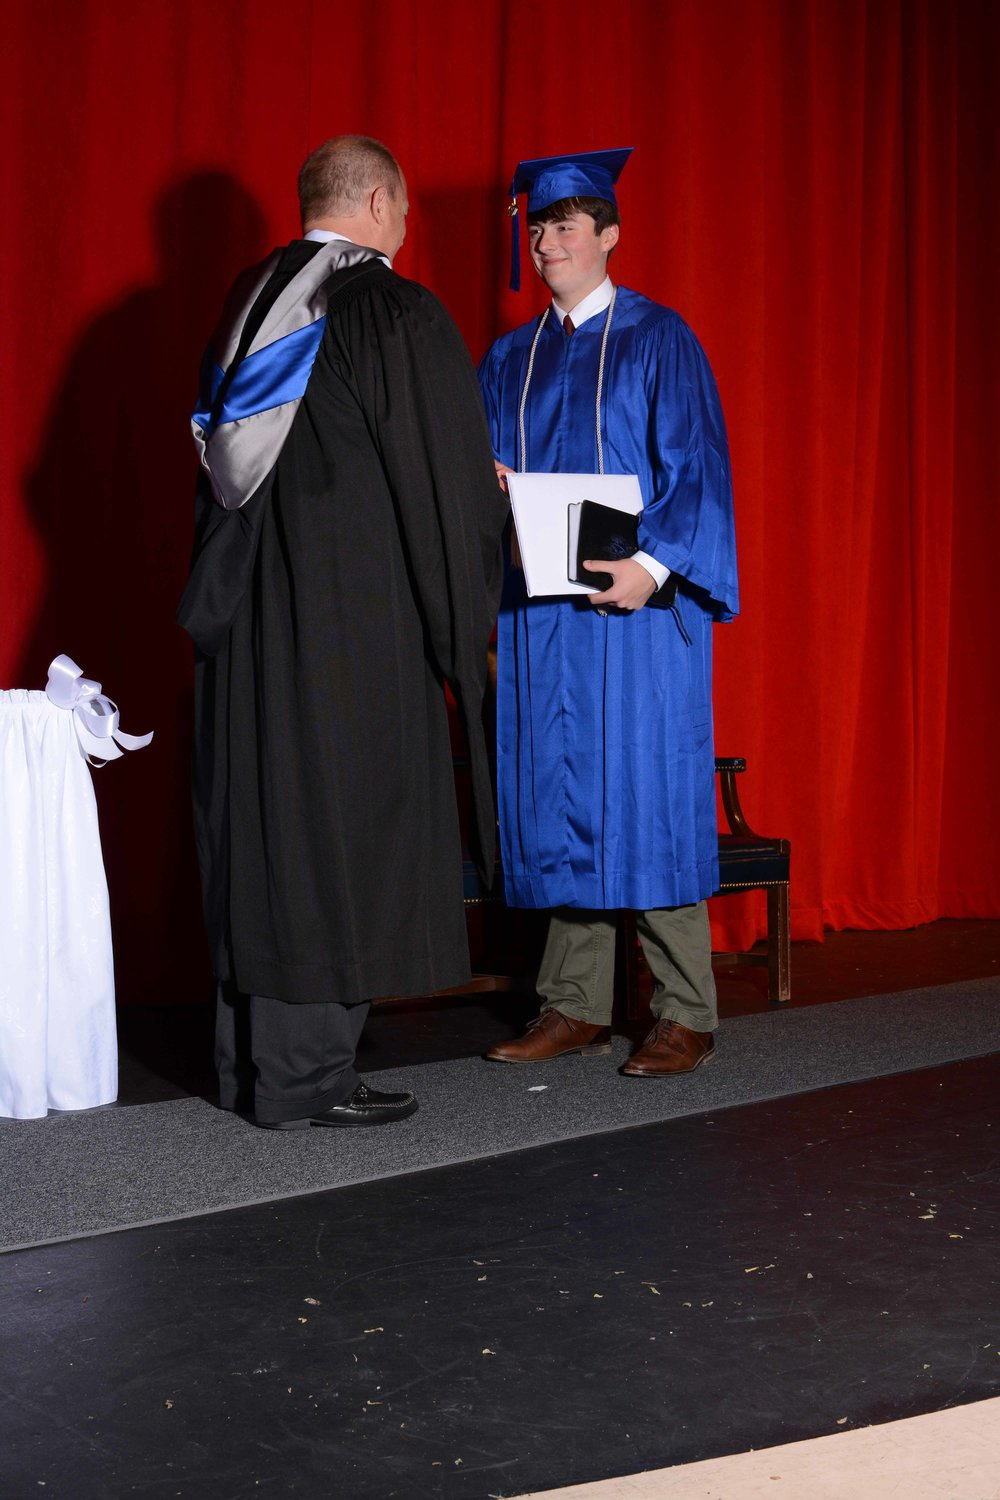 May15 HardingGraduation03.jpg